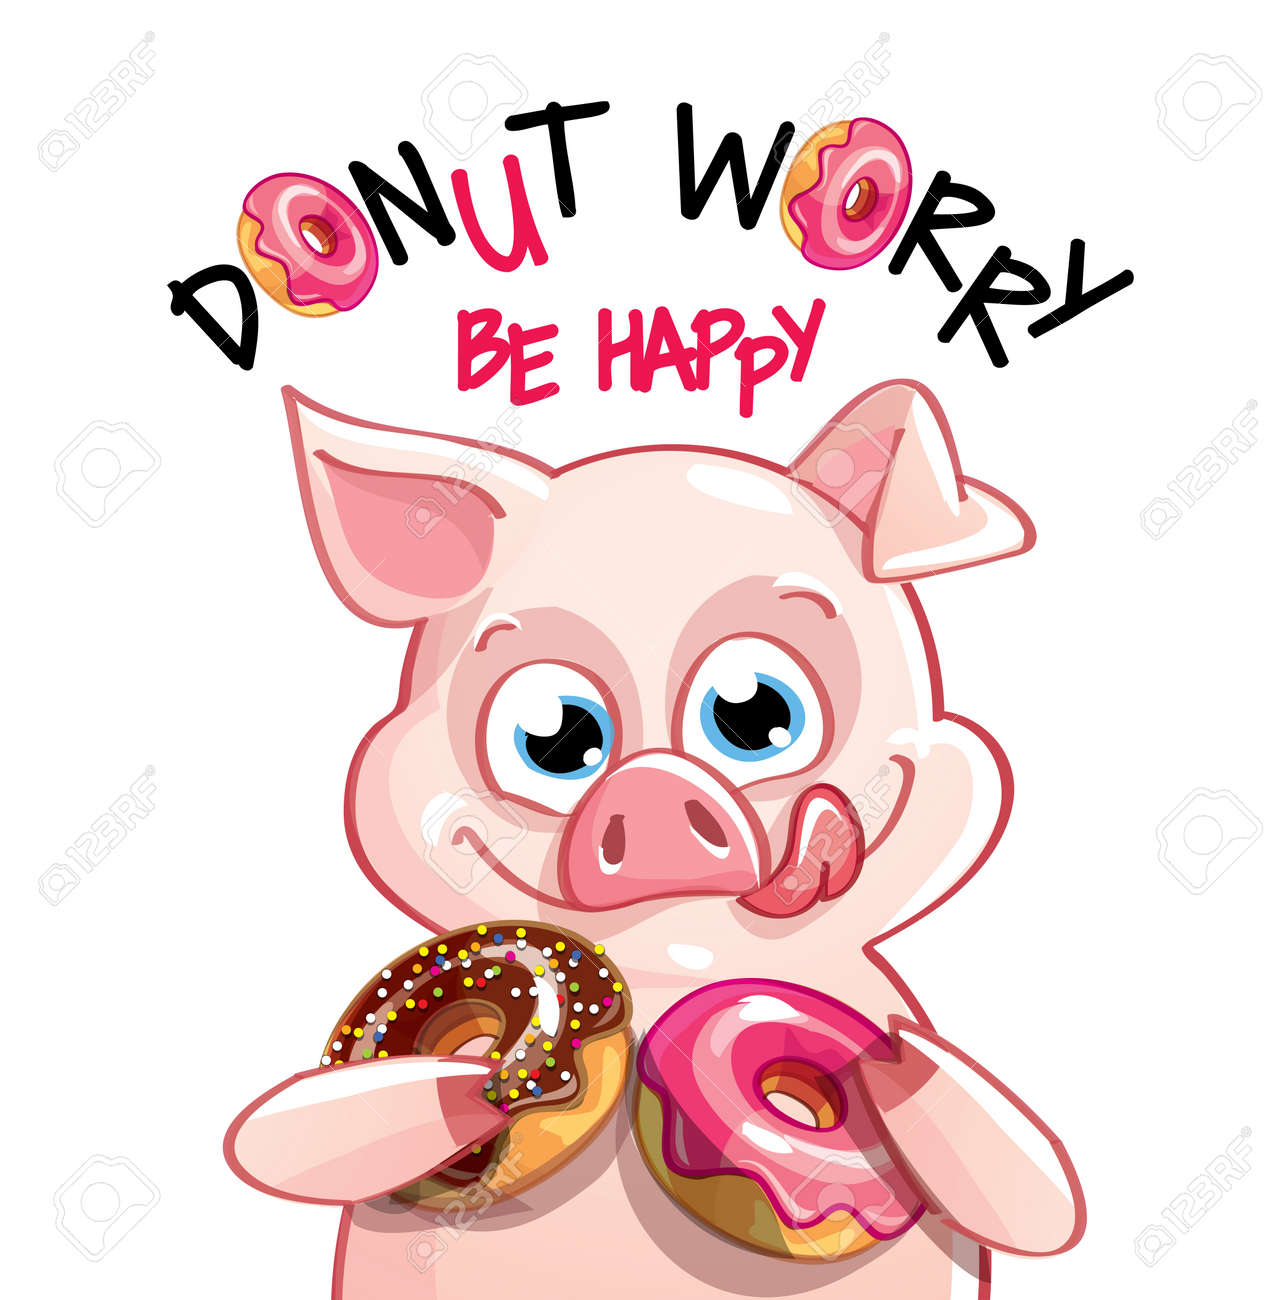 Vector illustration of cute cartoon happy fun pig with donuts. Greeting card, postcard. Dont worry, be happy. - 161167072